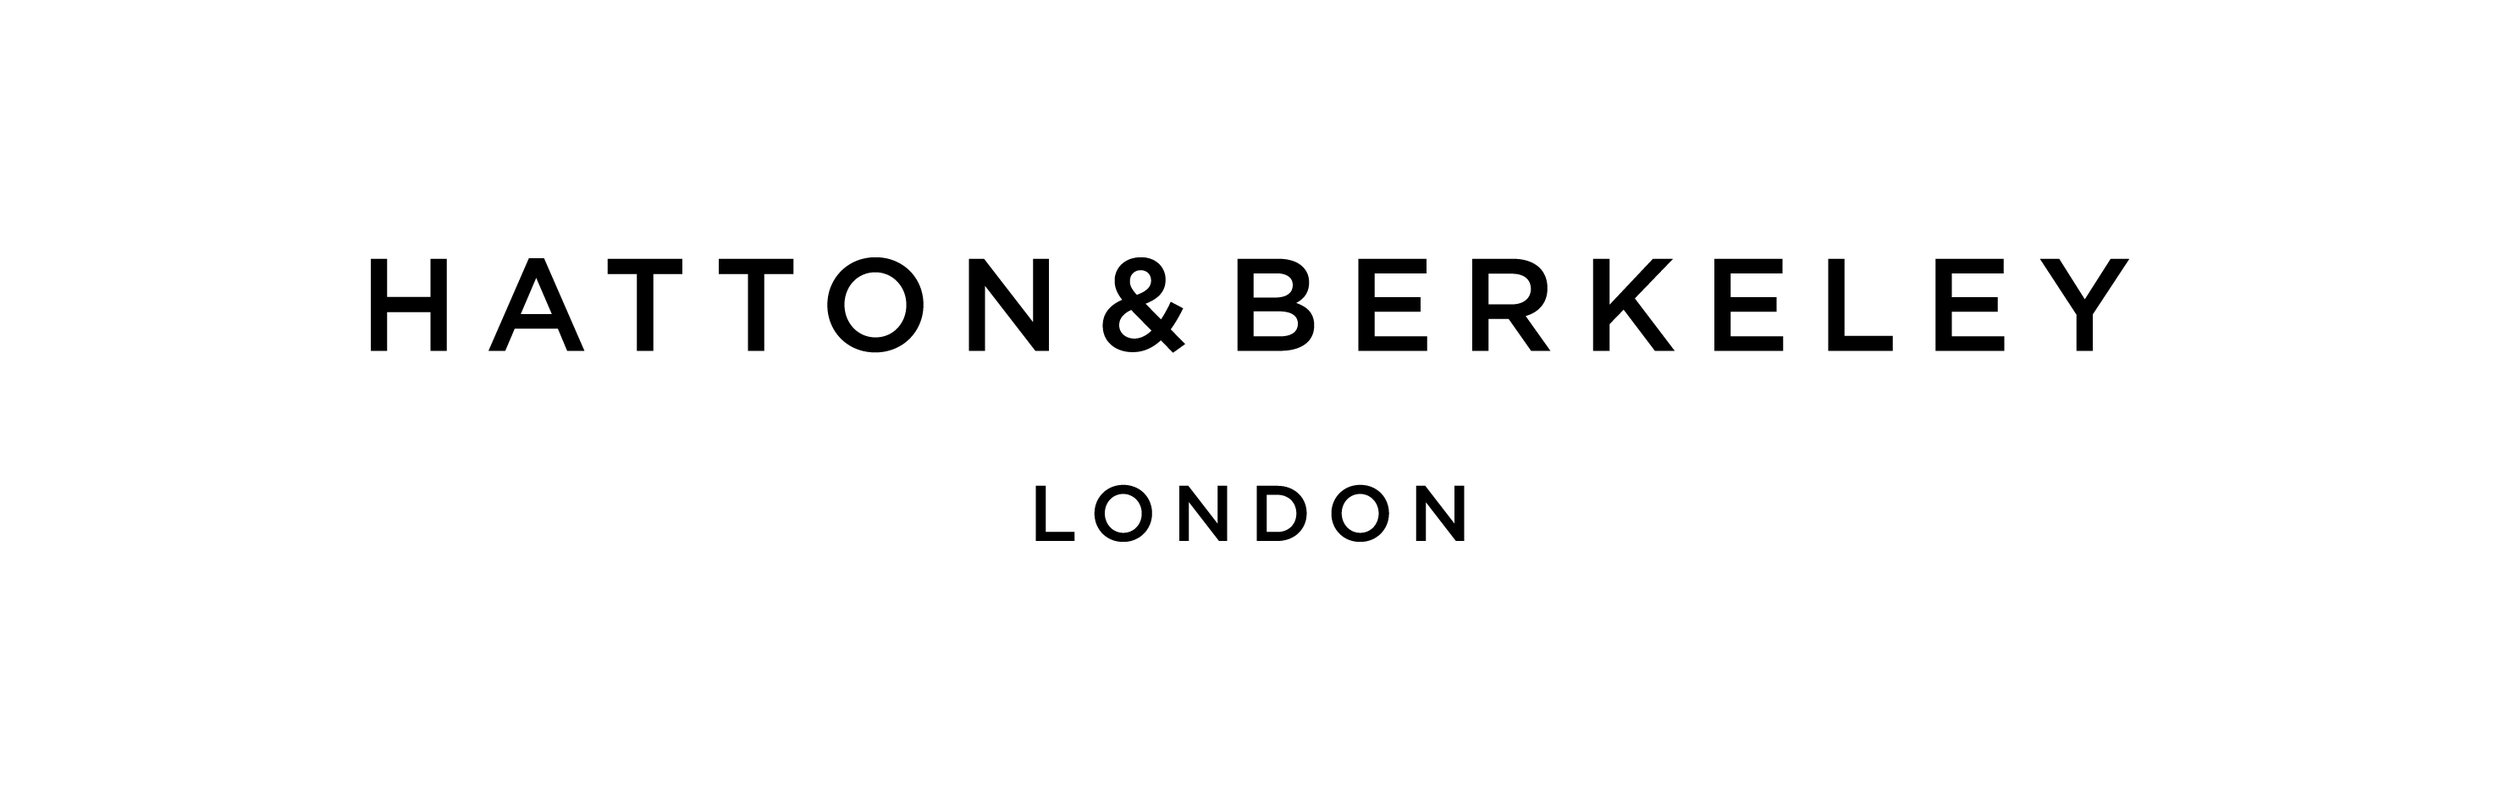 Hatton And Berkeley Home Page Branding.jpg